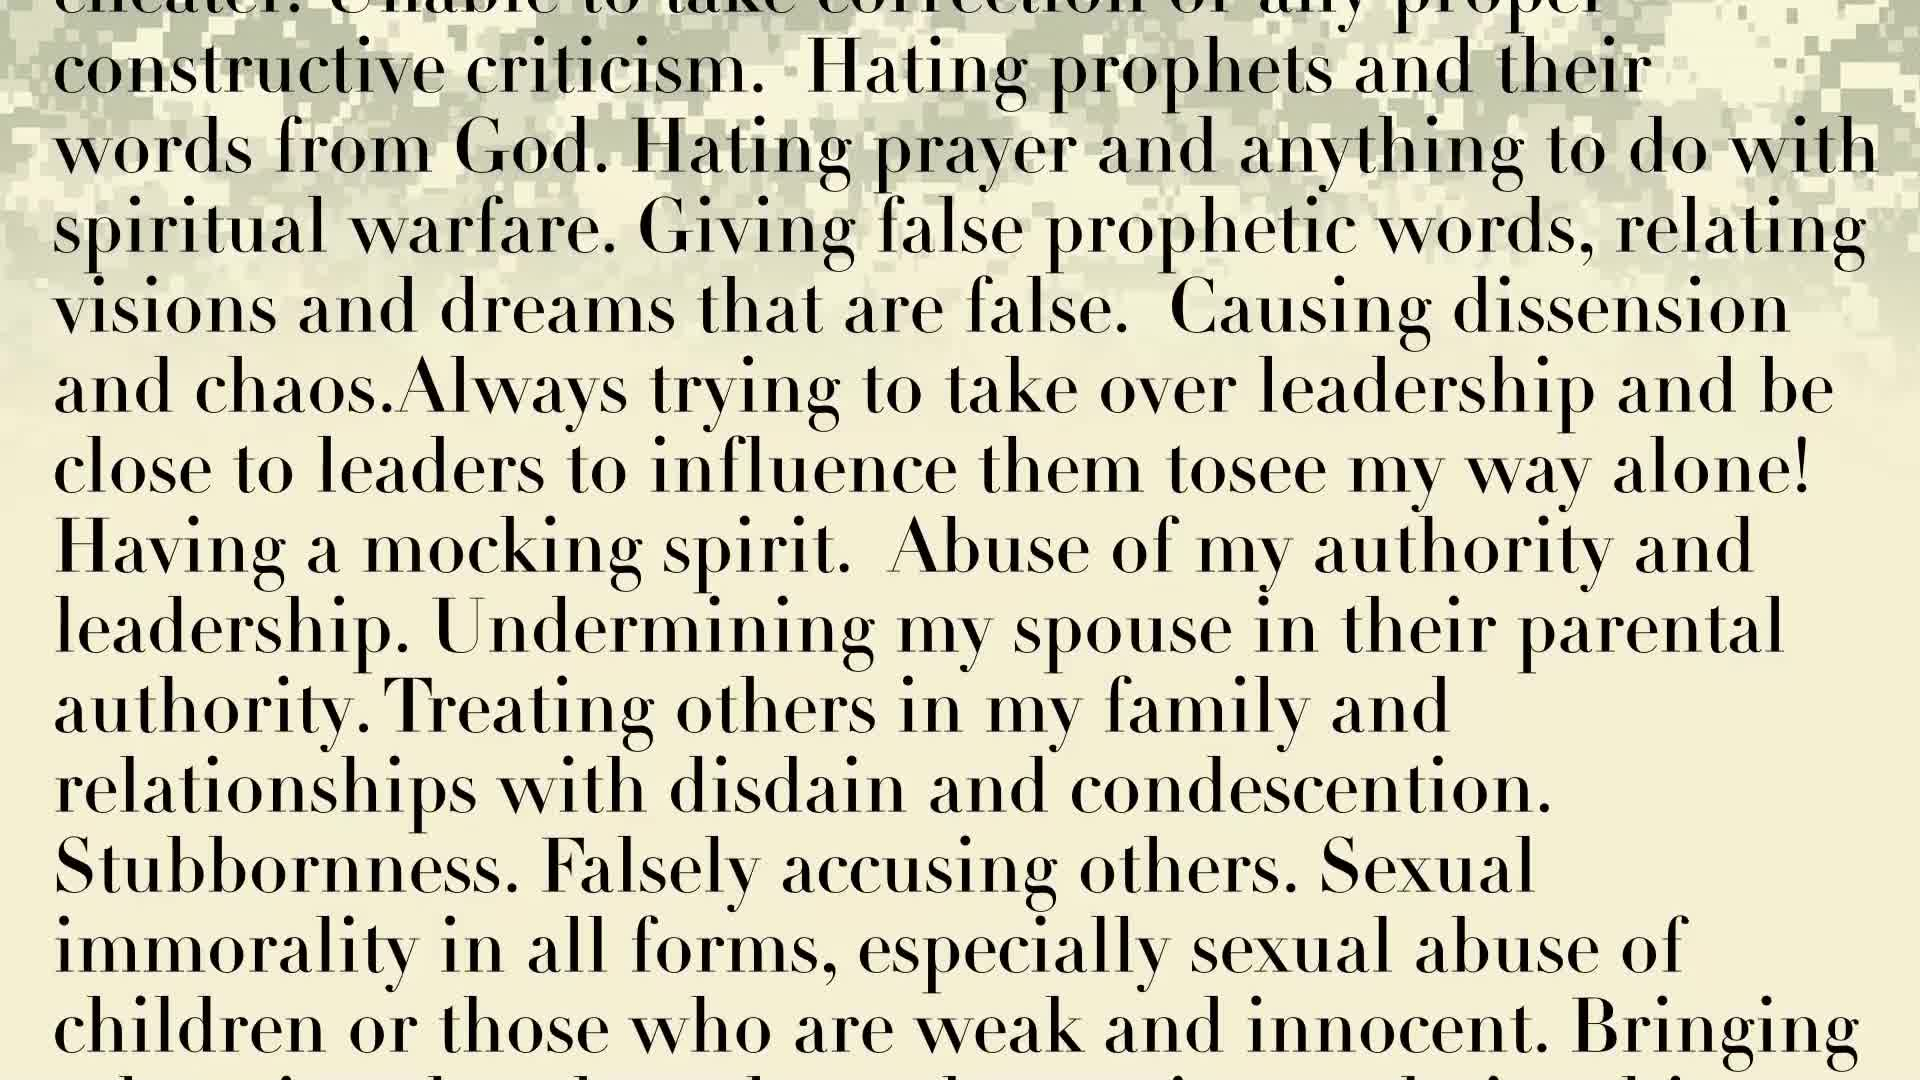 PRAYER FOCUS: RENUNCIATION PRAYER OF SPIRIT OF JEZEBEL IN OURSELFAND FOR OUR NATION!